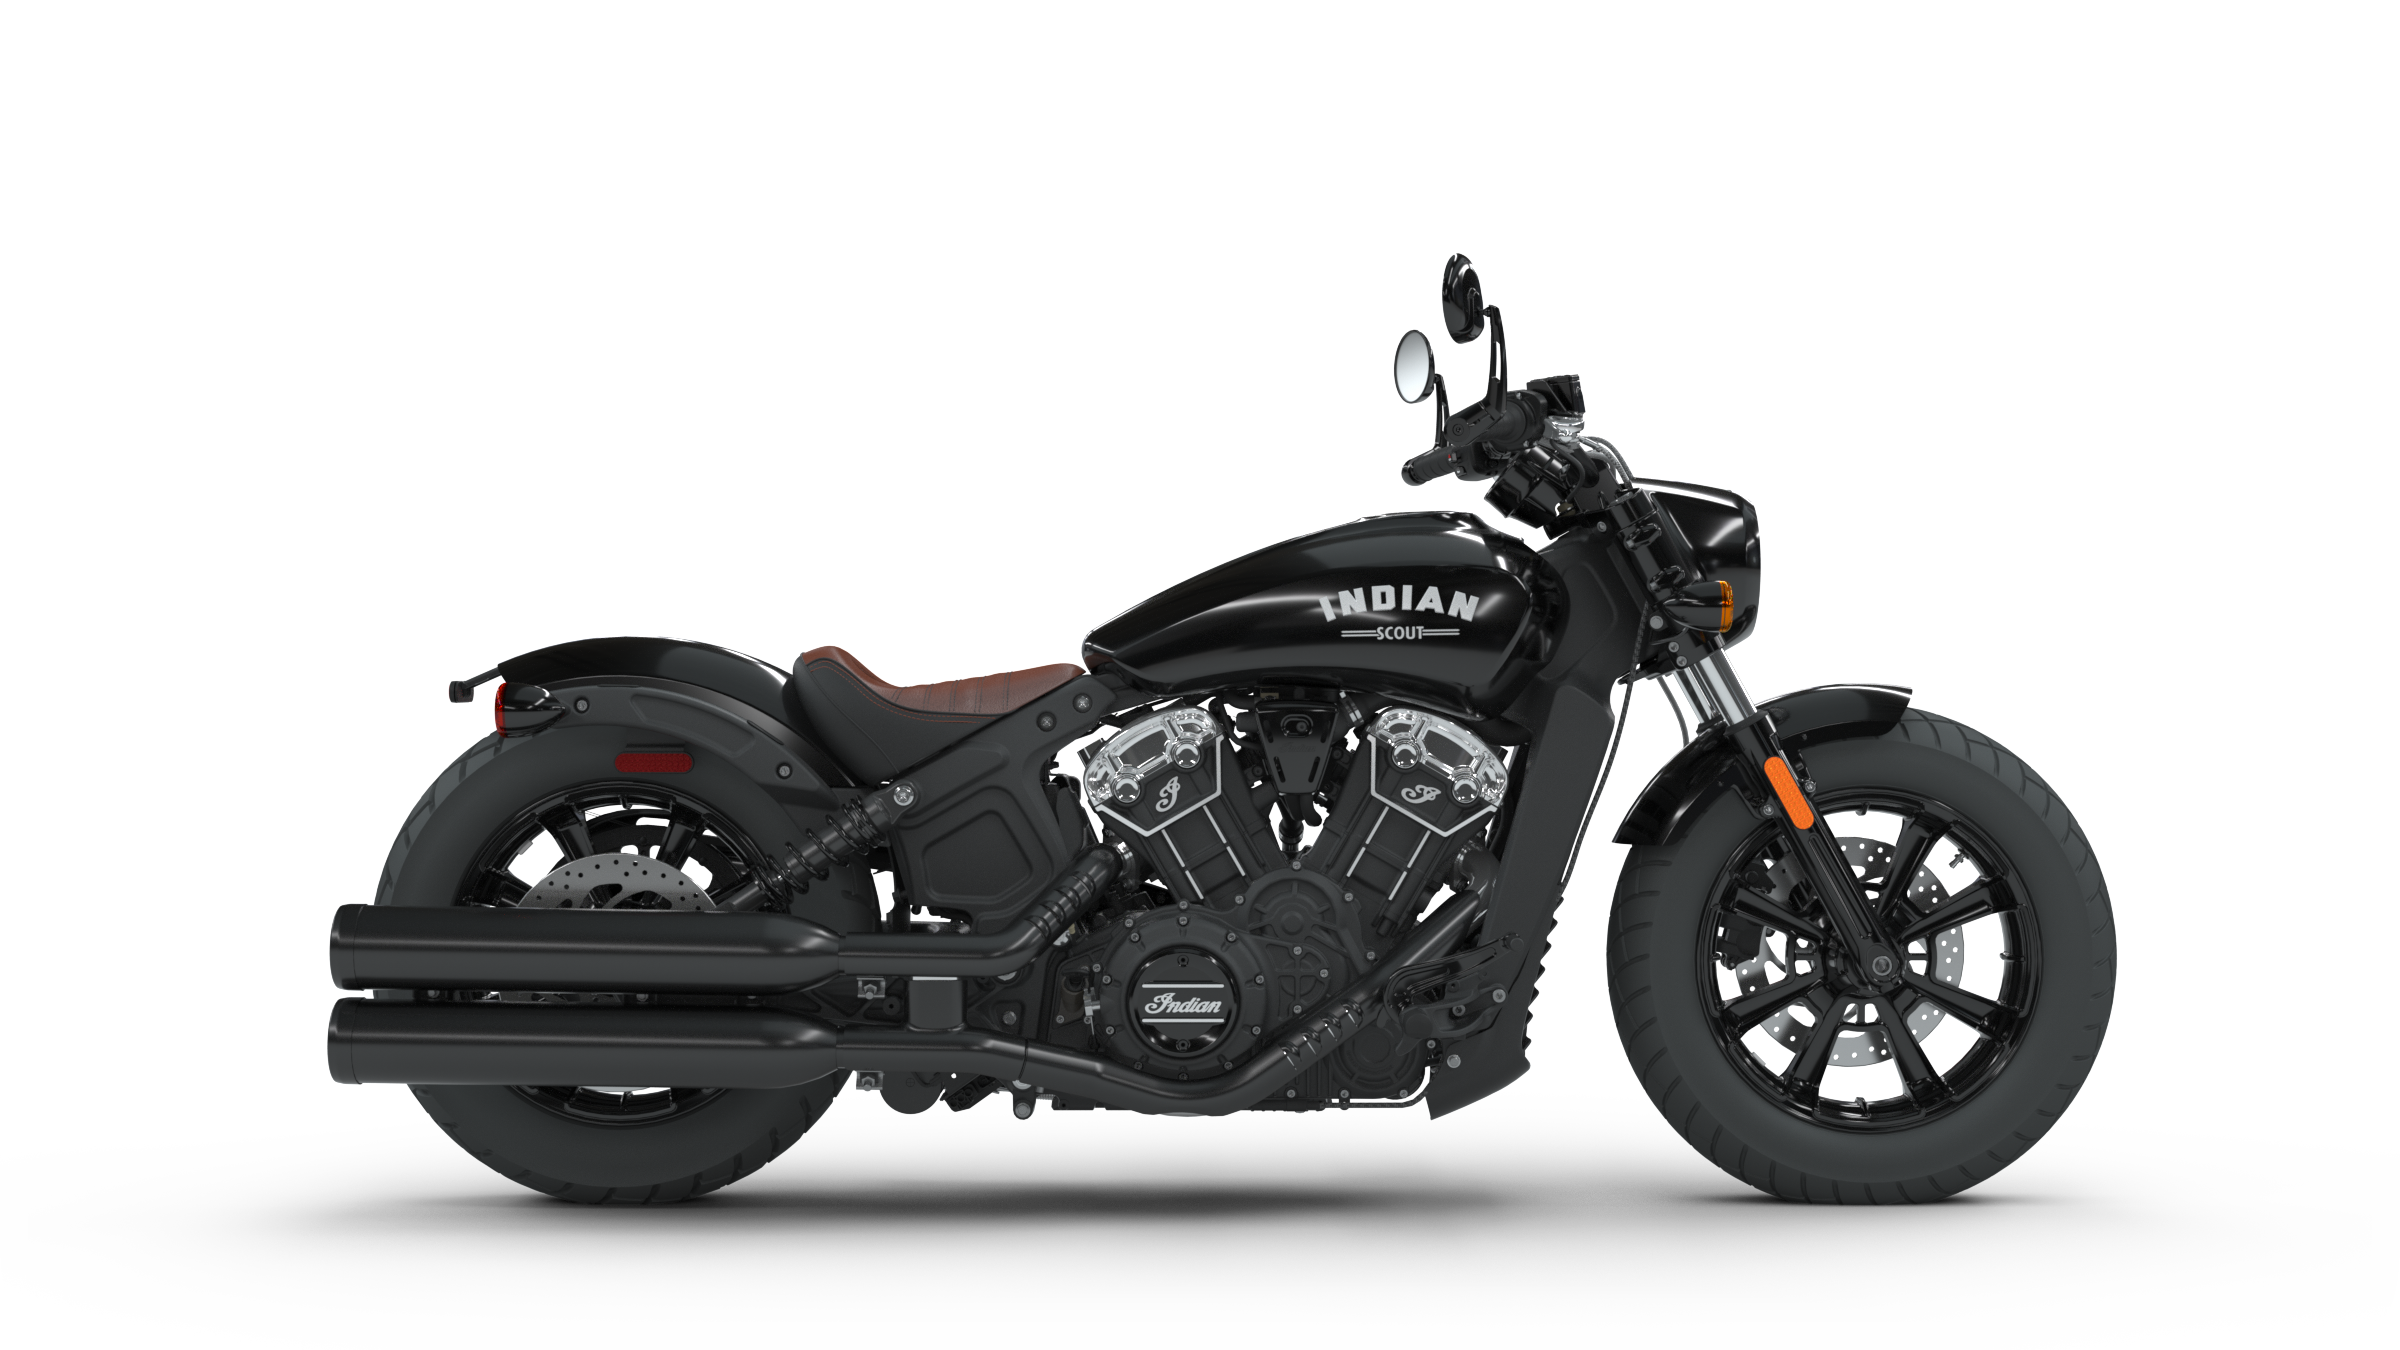 53f7f424296d 2019 Scout Bobber Thunder Black - Indian Motorcycle® of El Paso